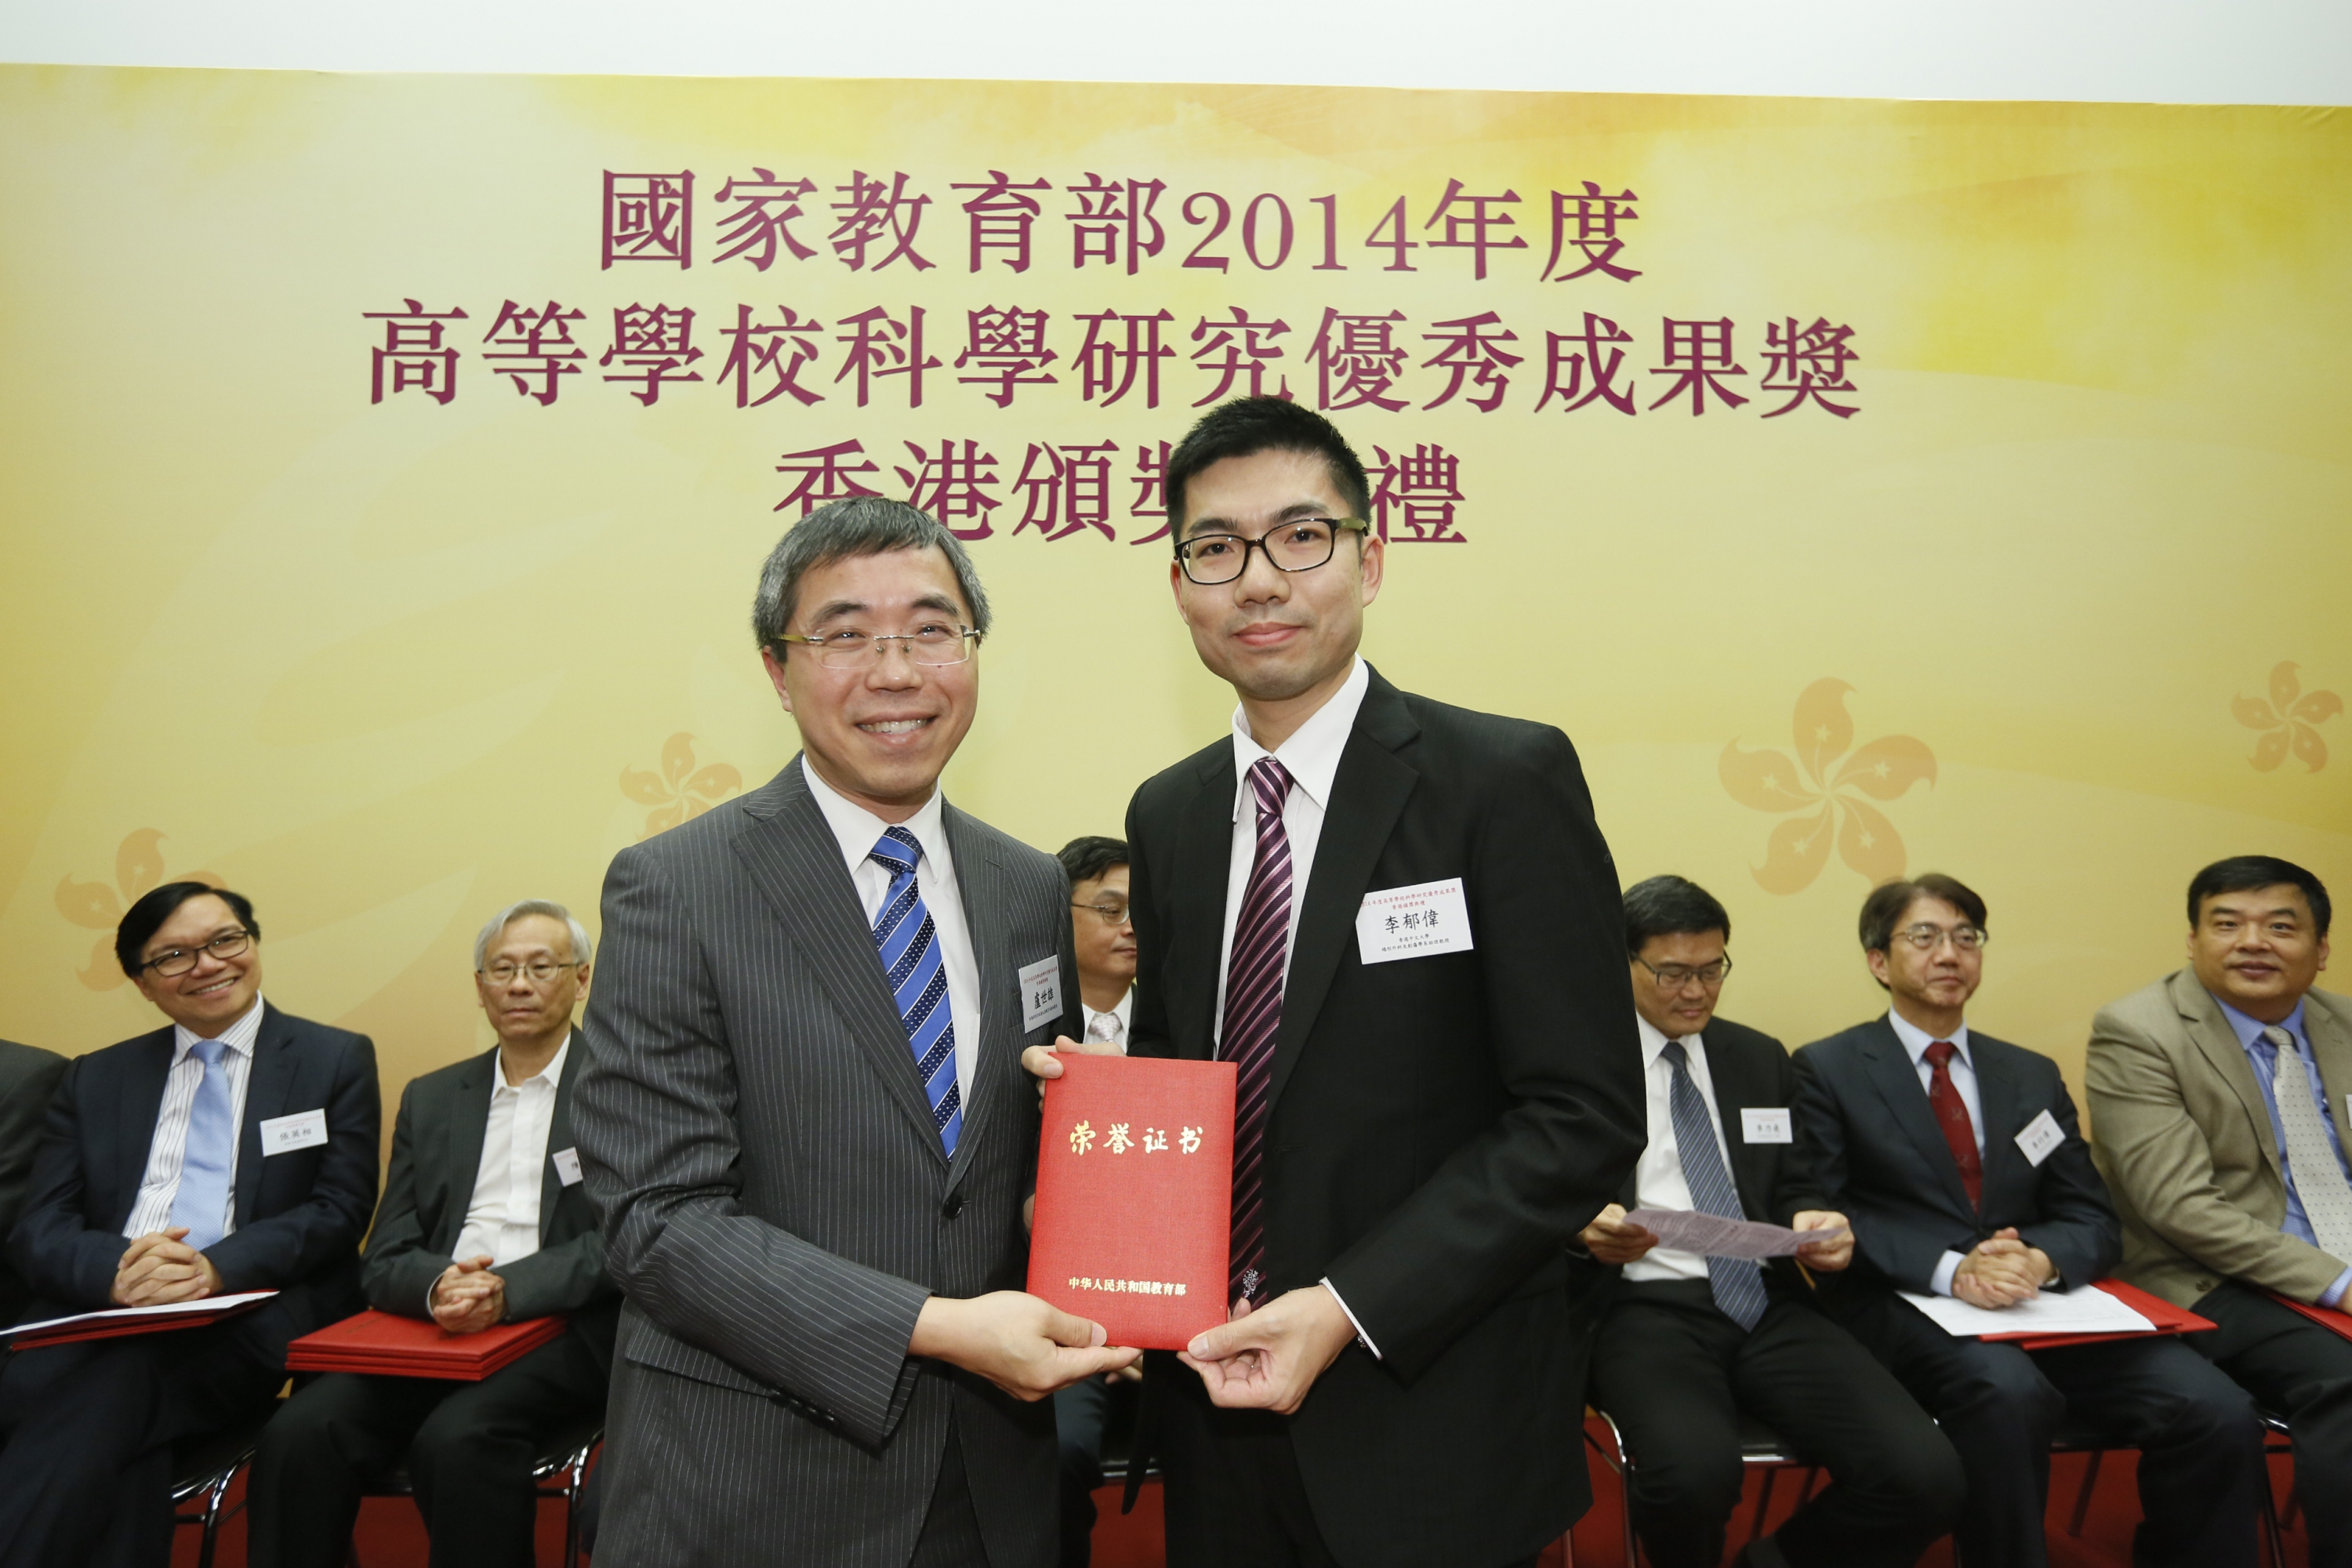 Prof. Yuk-wai Lee (right) represents Prof. Gang Li to receive the award certificate from Mr. Brian Lo, Deputy Secretary for Education, HKSAR Government.